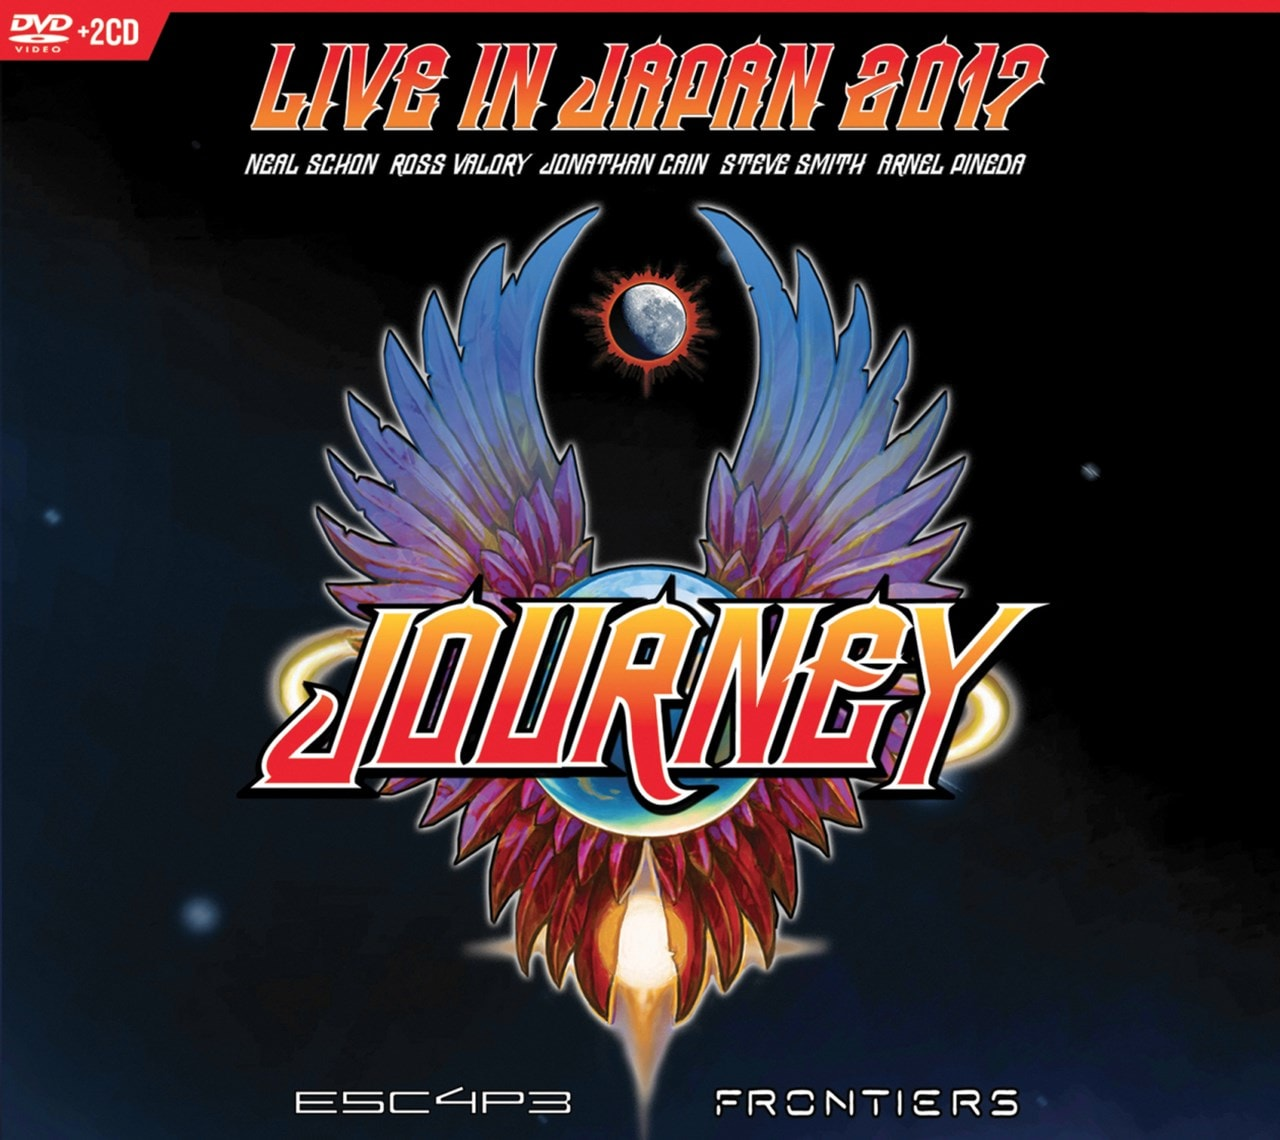 Journey: Live in Japan 2017 - Escape/Frontiers - 1